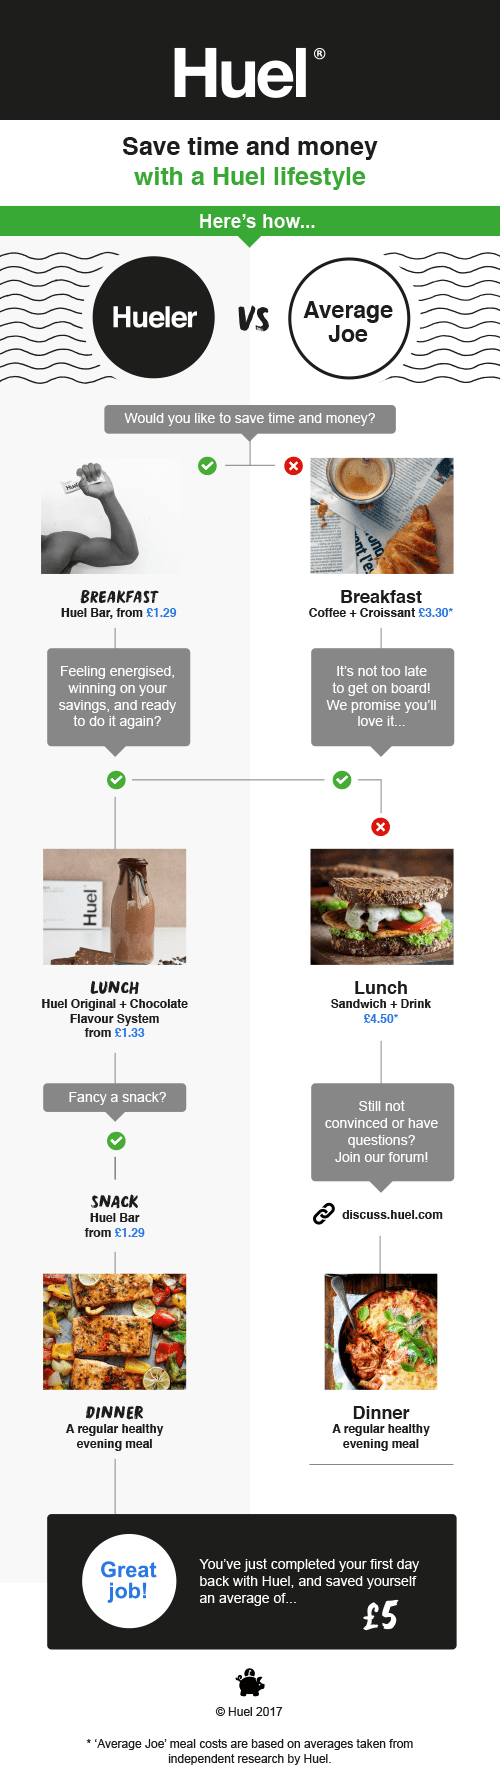 huel welcome email series educational product information comparison